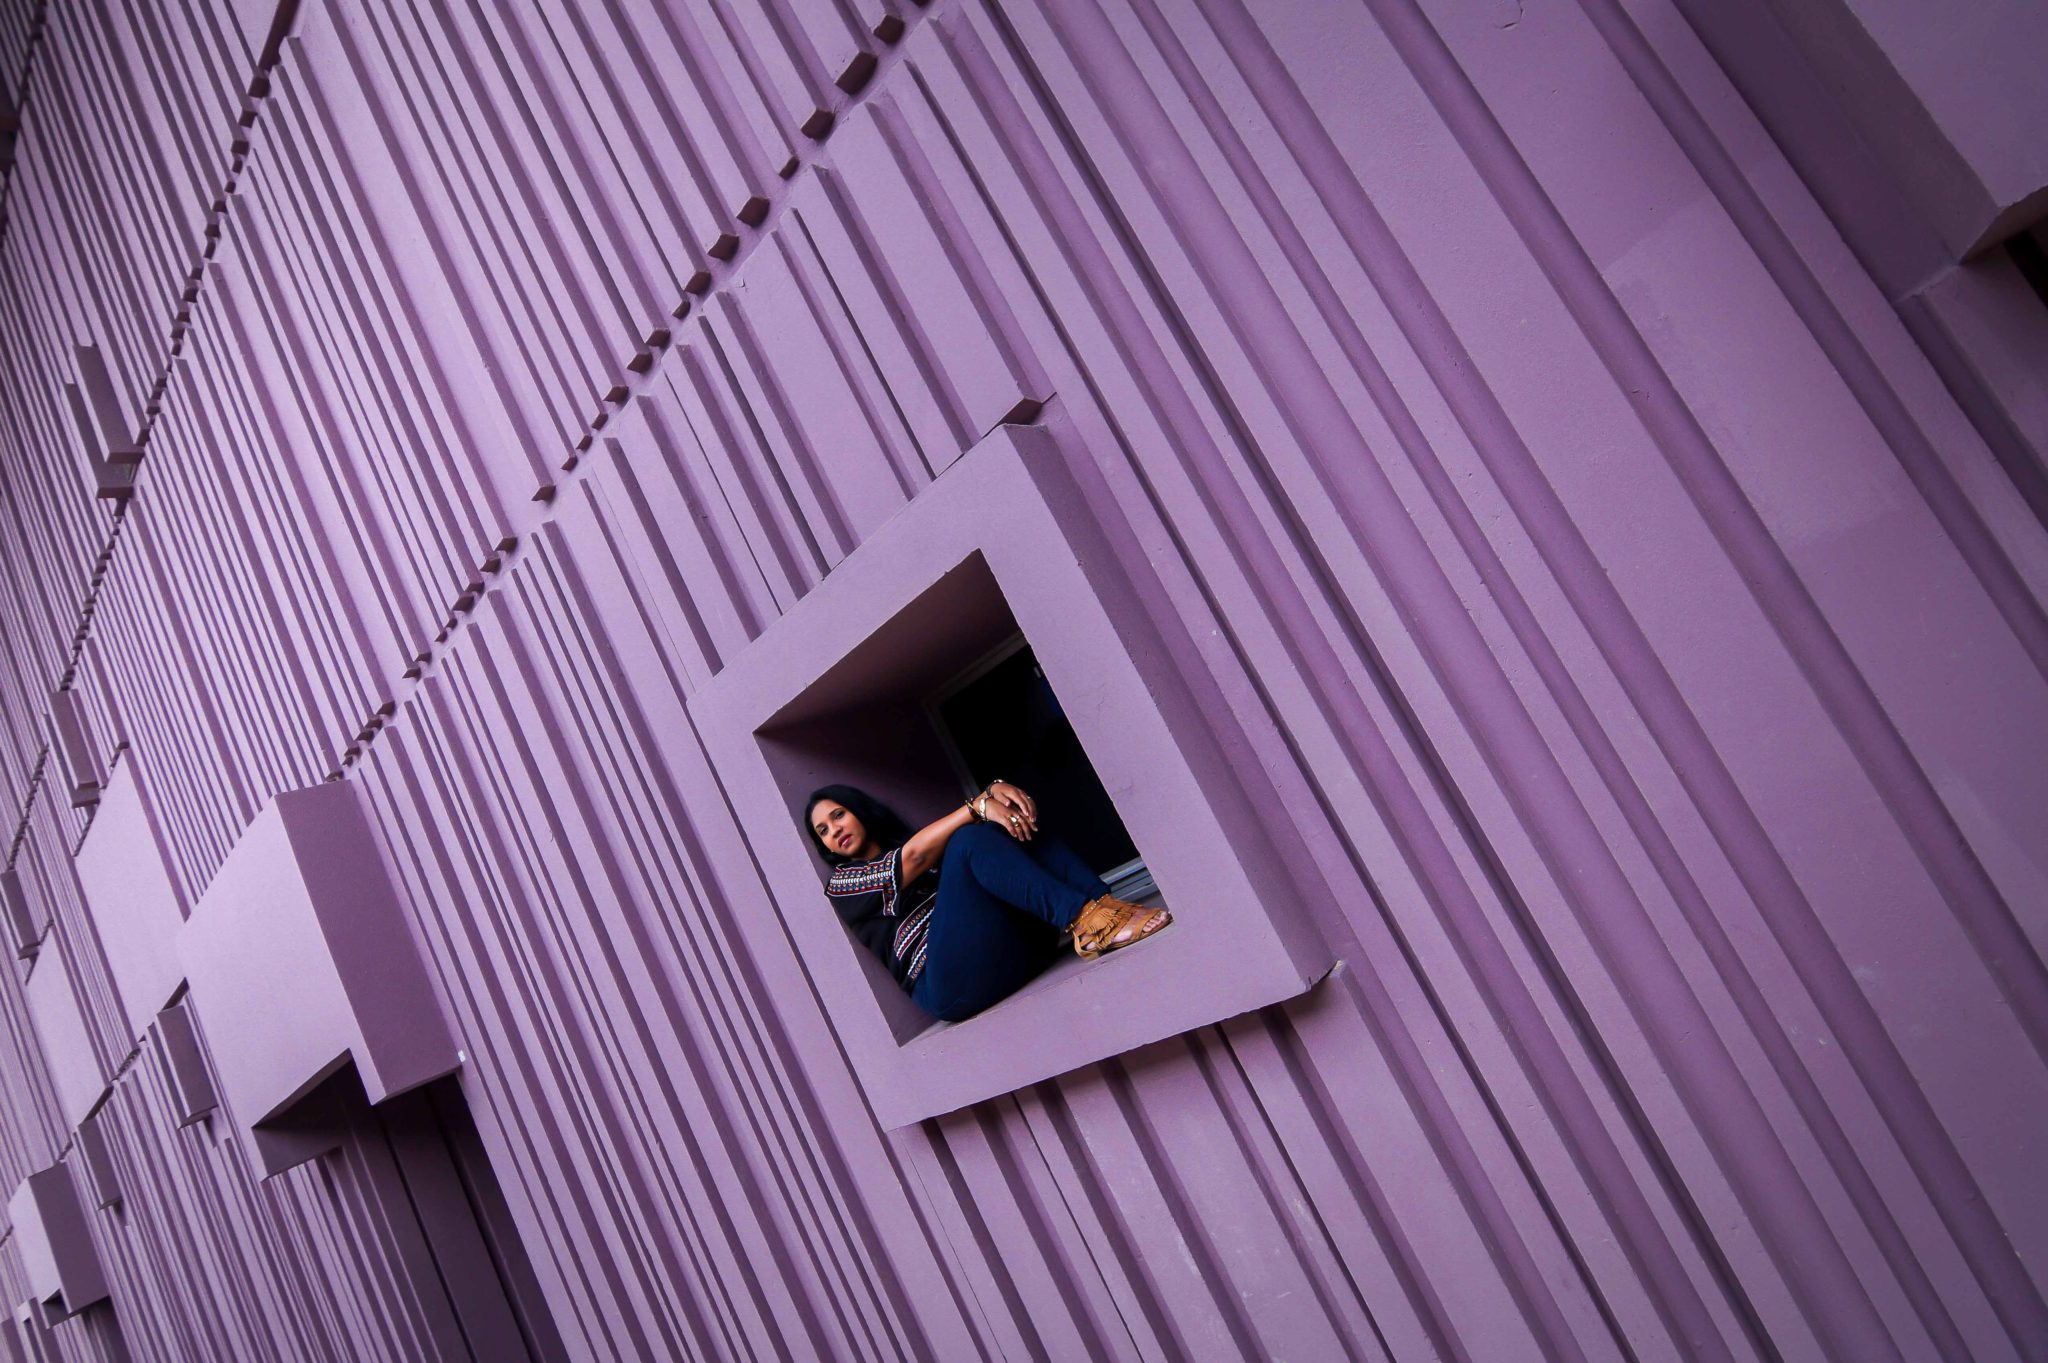 Le mur violet de Beaugrenelle comme lieu de shooting photo